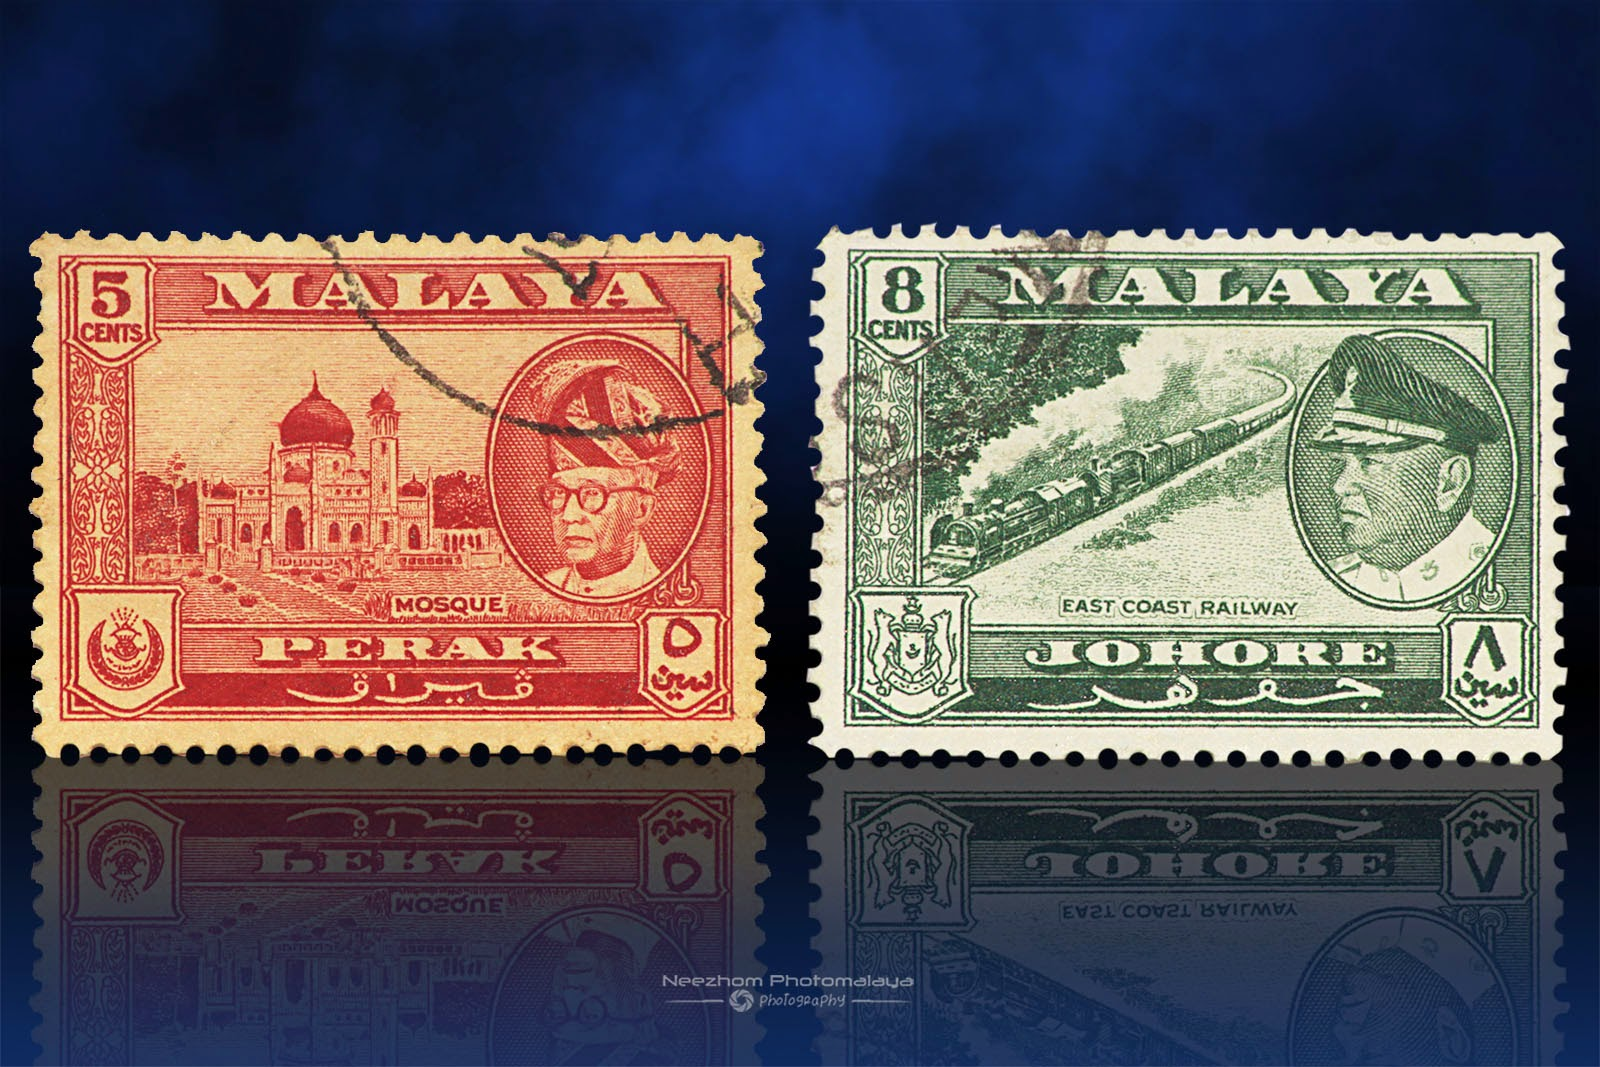 Malaya  1957 - 1961 stamps 5 Cents, 8 Cents